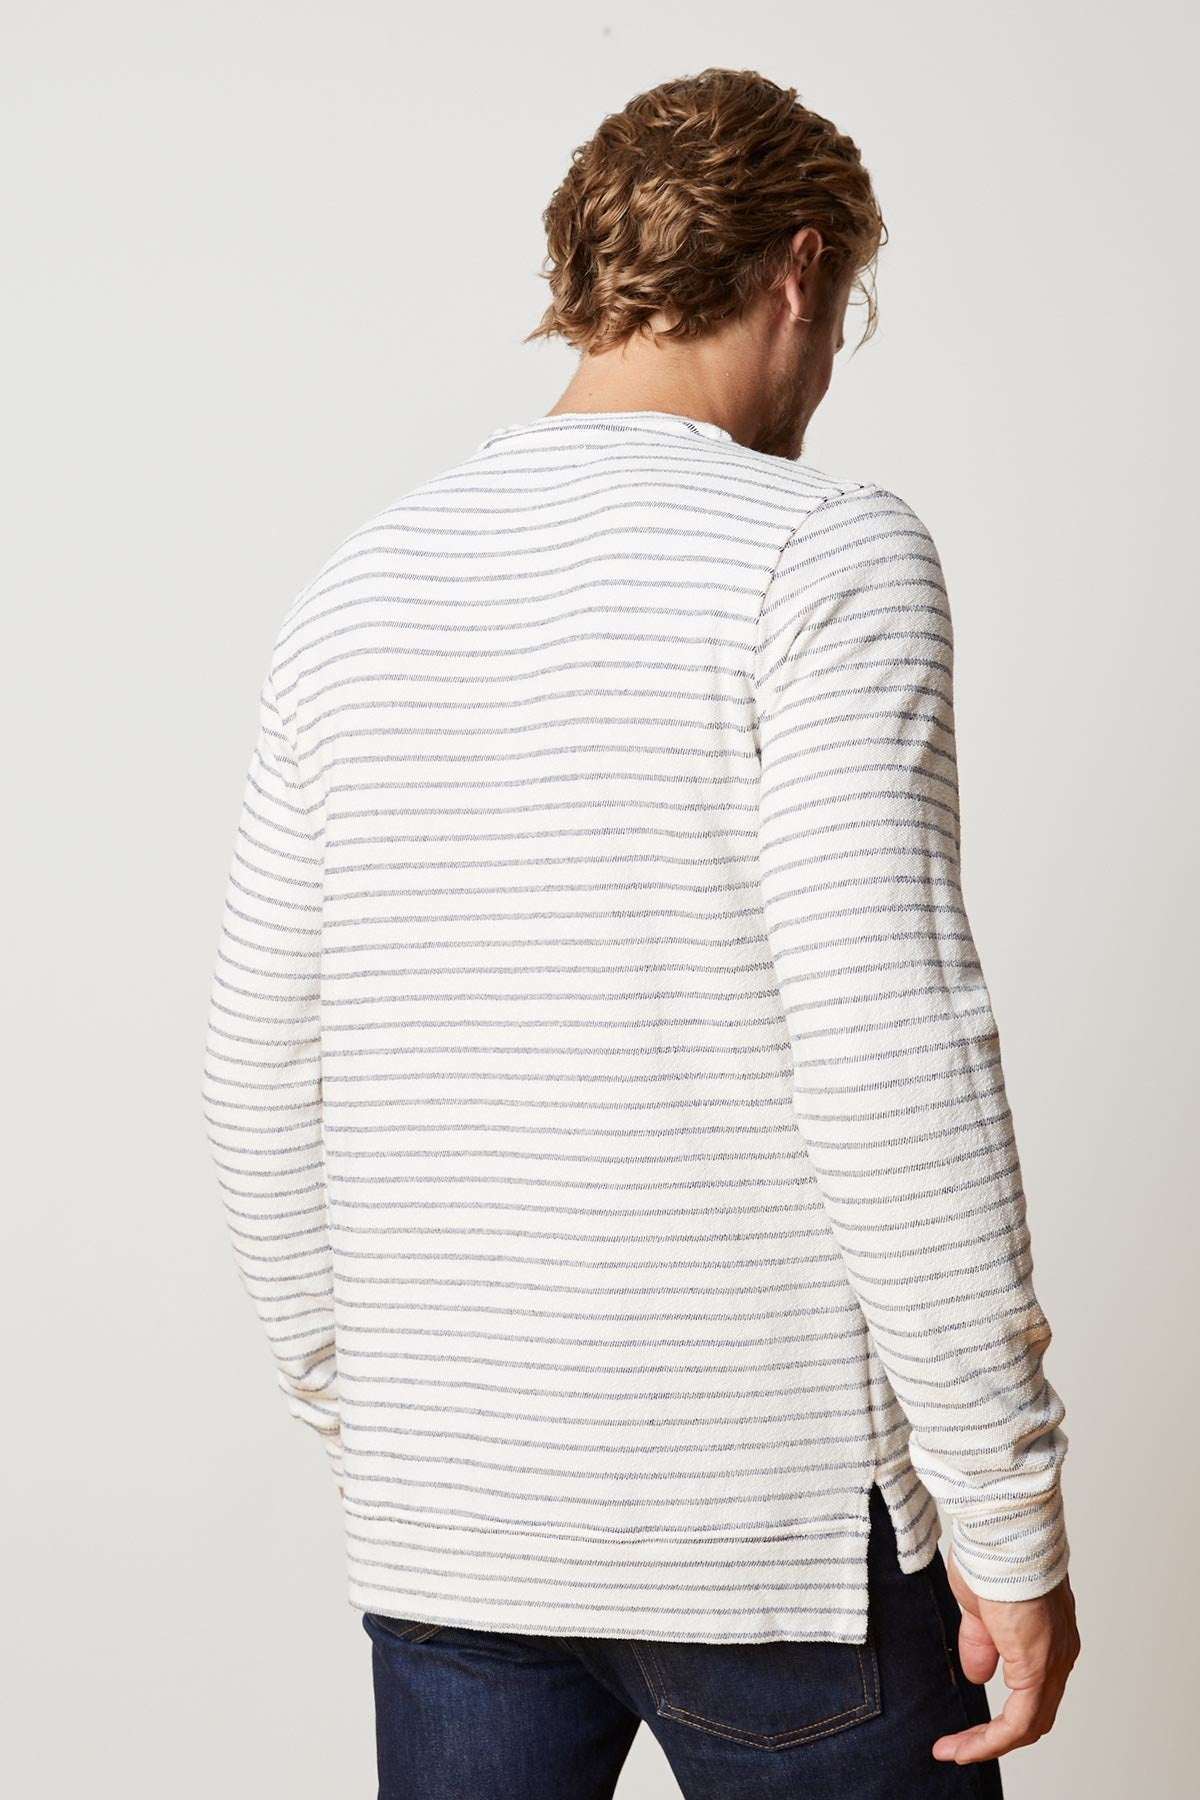 ARGO STRIPE TERRY CREW NECK SWEATSHIRT